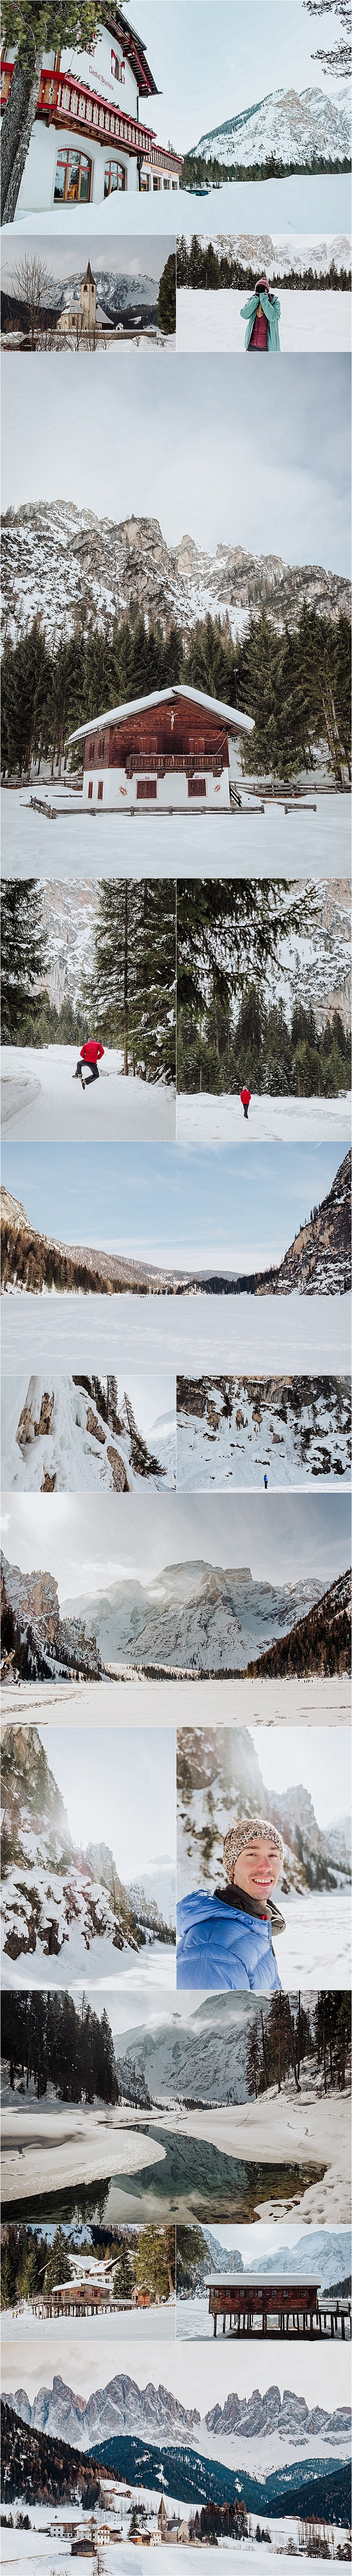 Around the town of Braies and Lake Braies in the Dolomites in Winter by adventure wedding photographer Wild Connections Photography